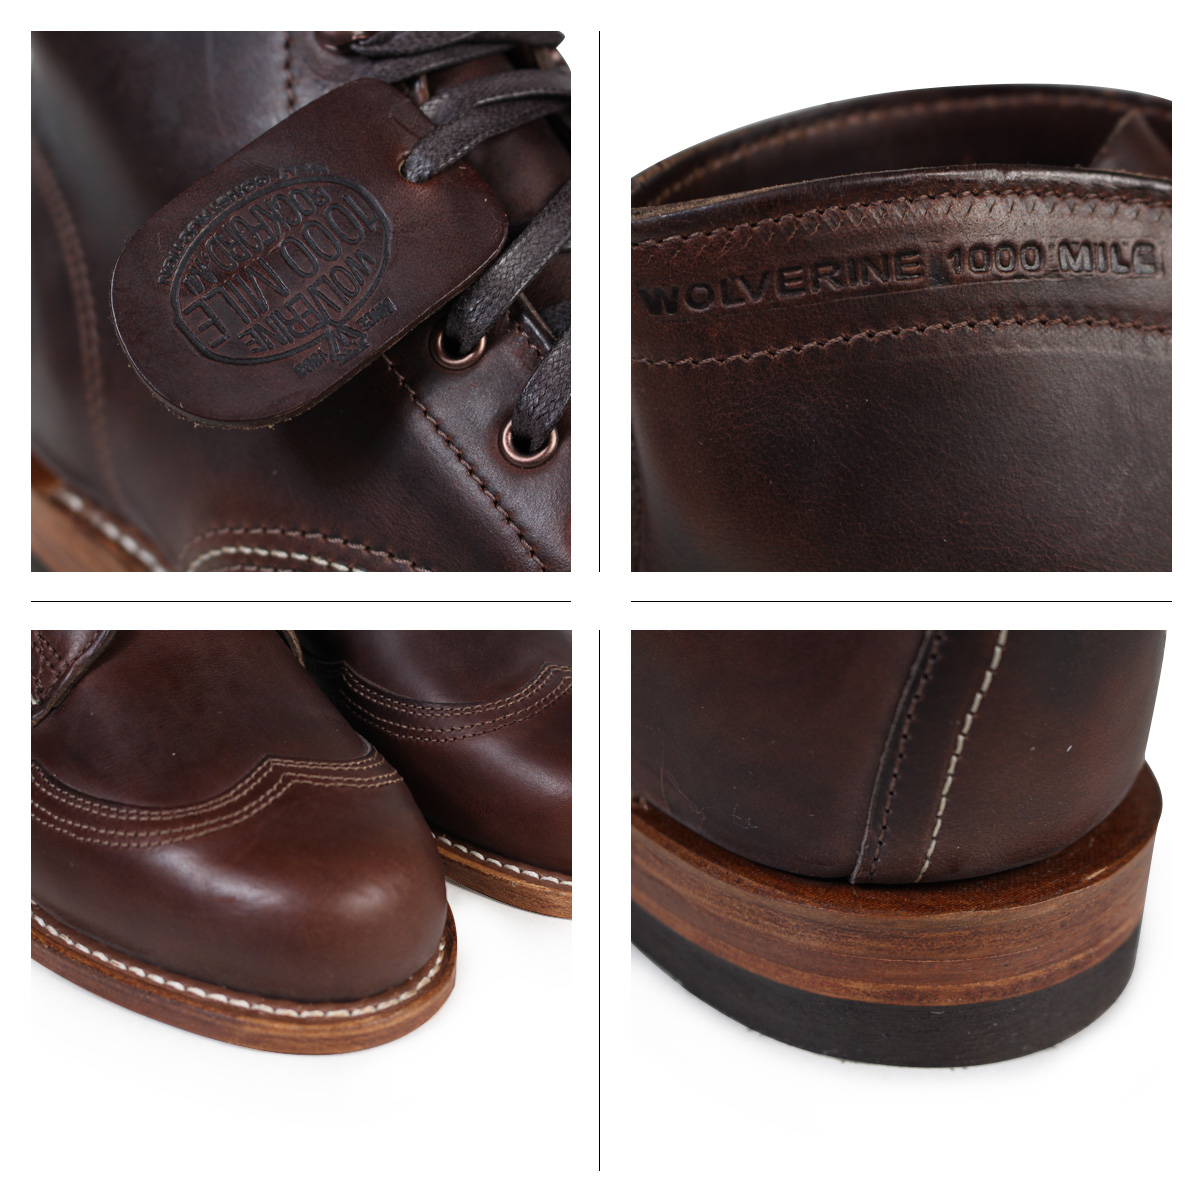 35c3febfc1c WOLVERINE Wolverene 1,000 miles boots ADDISON 1000MILE WINGTIP BOOT D Wise  W05342 brown wing tip work boots men